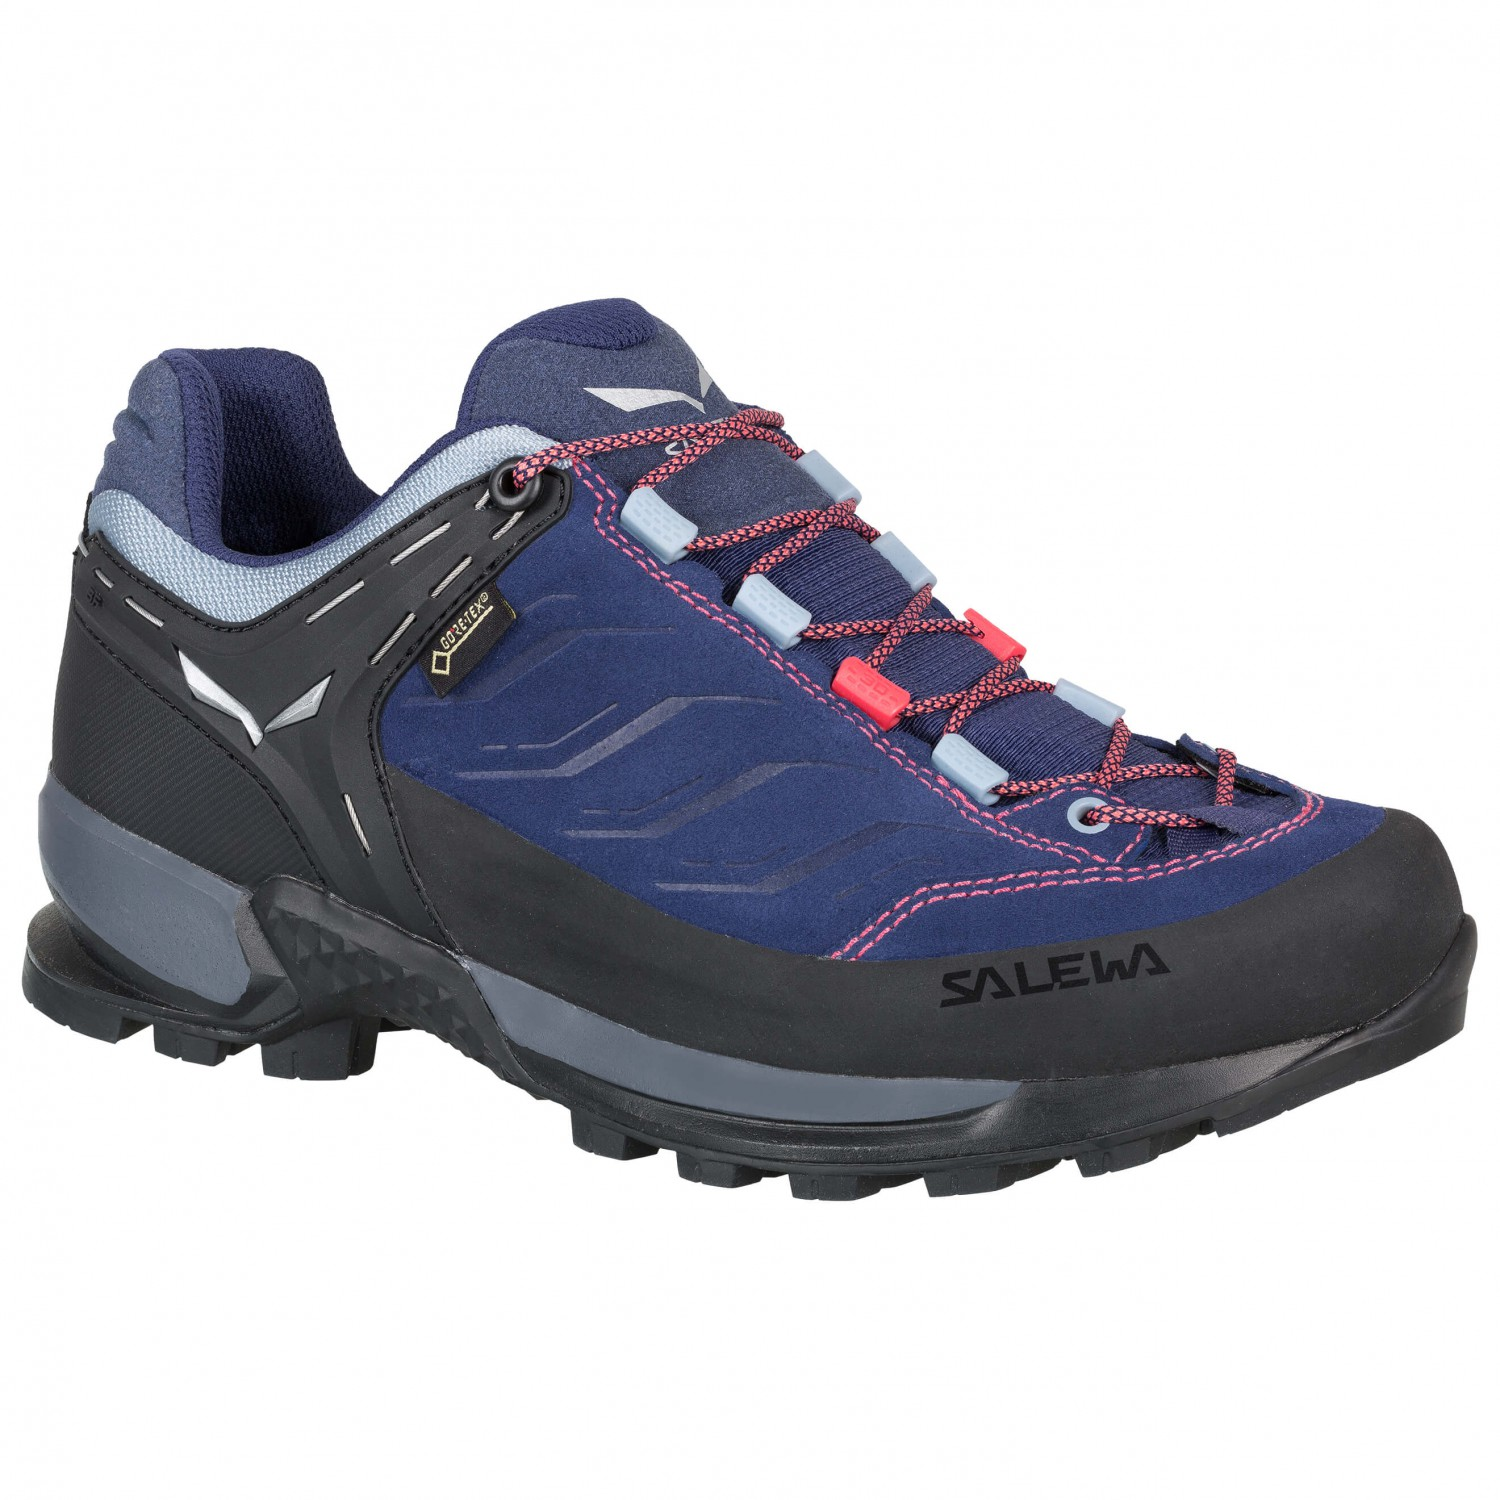 salewa mtn trainer gtx approach shoes women 39 s free uk. Black Bedroom Furniture Sets. Home Design Ideas